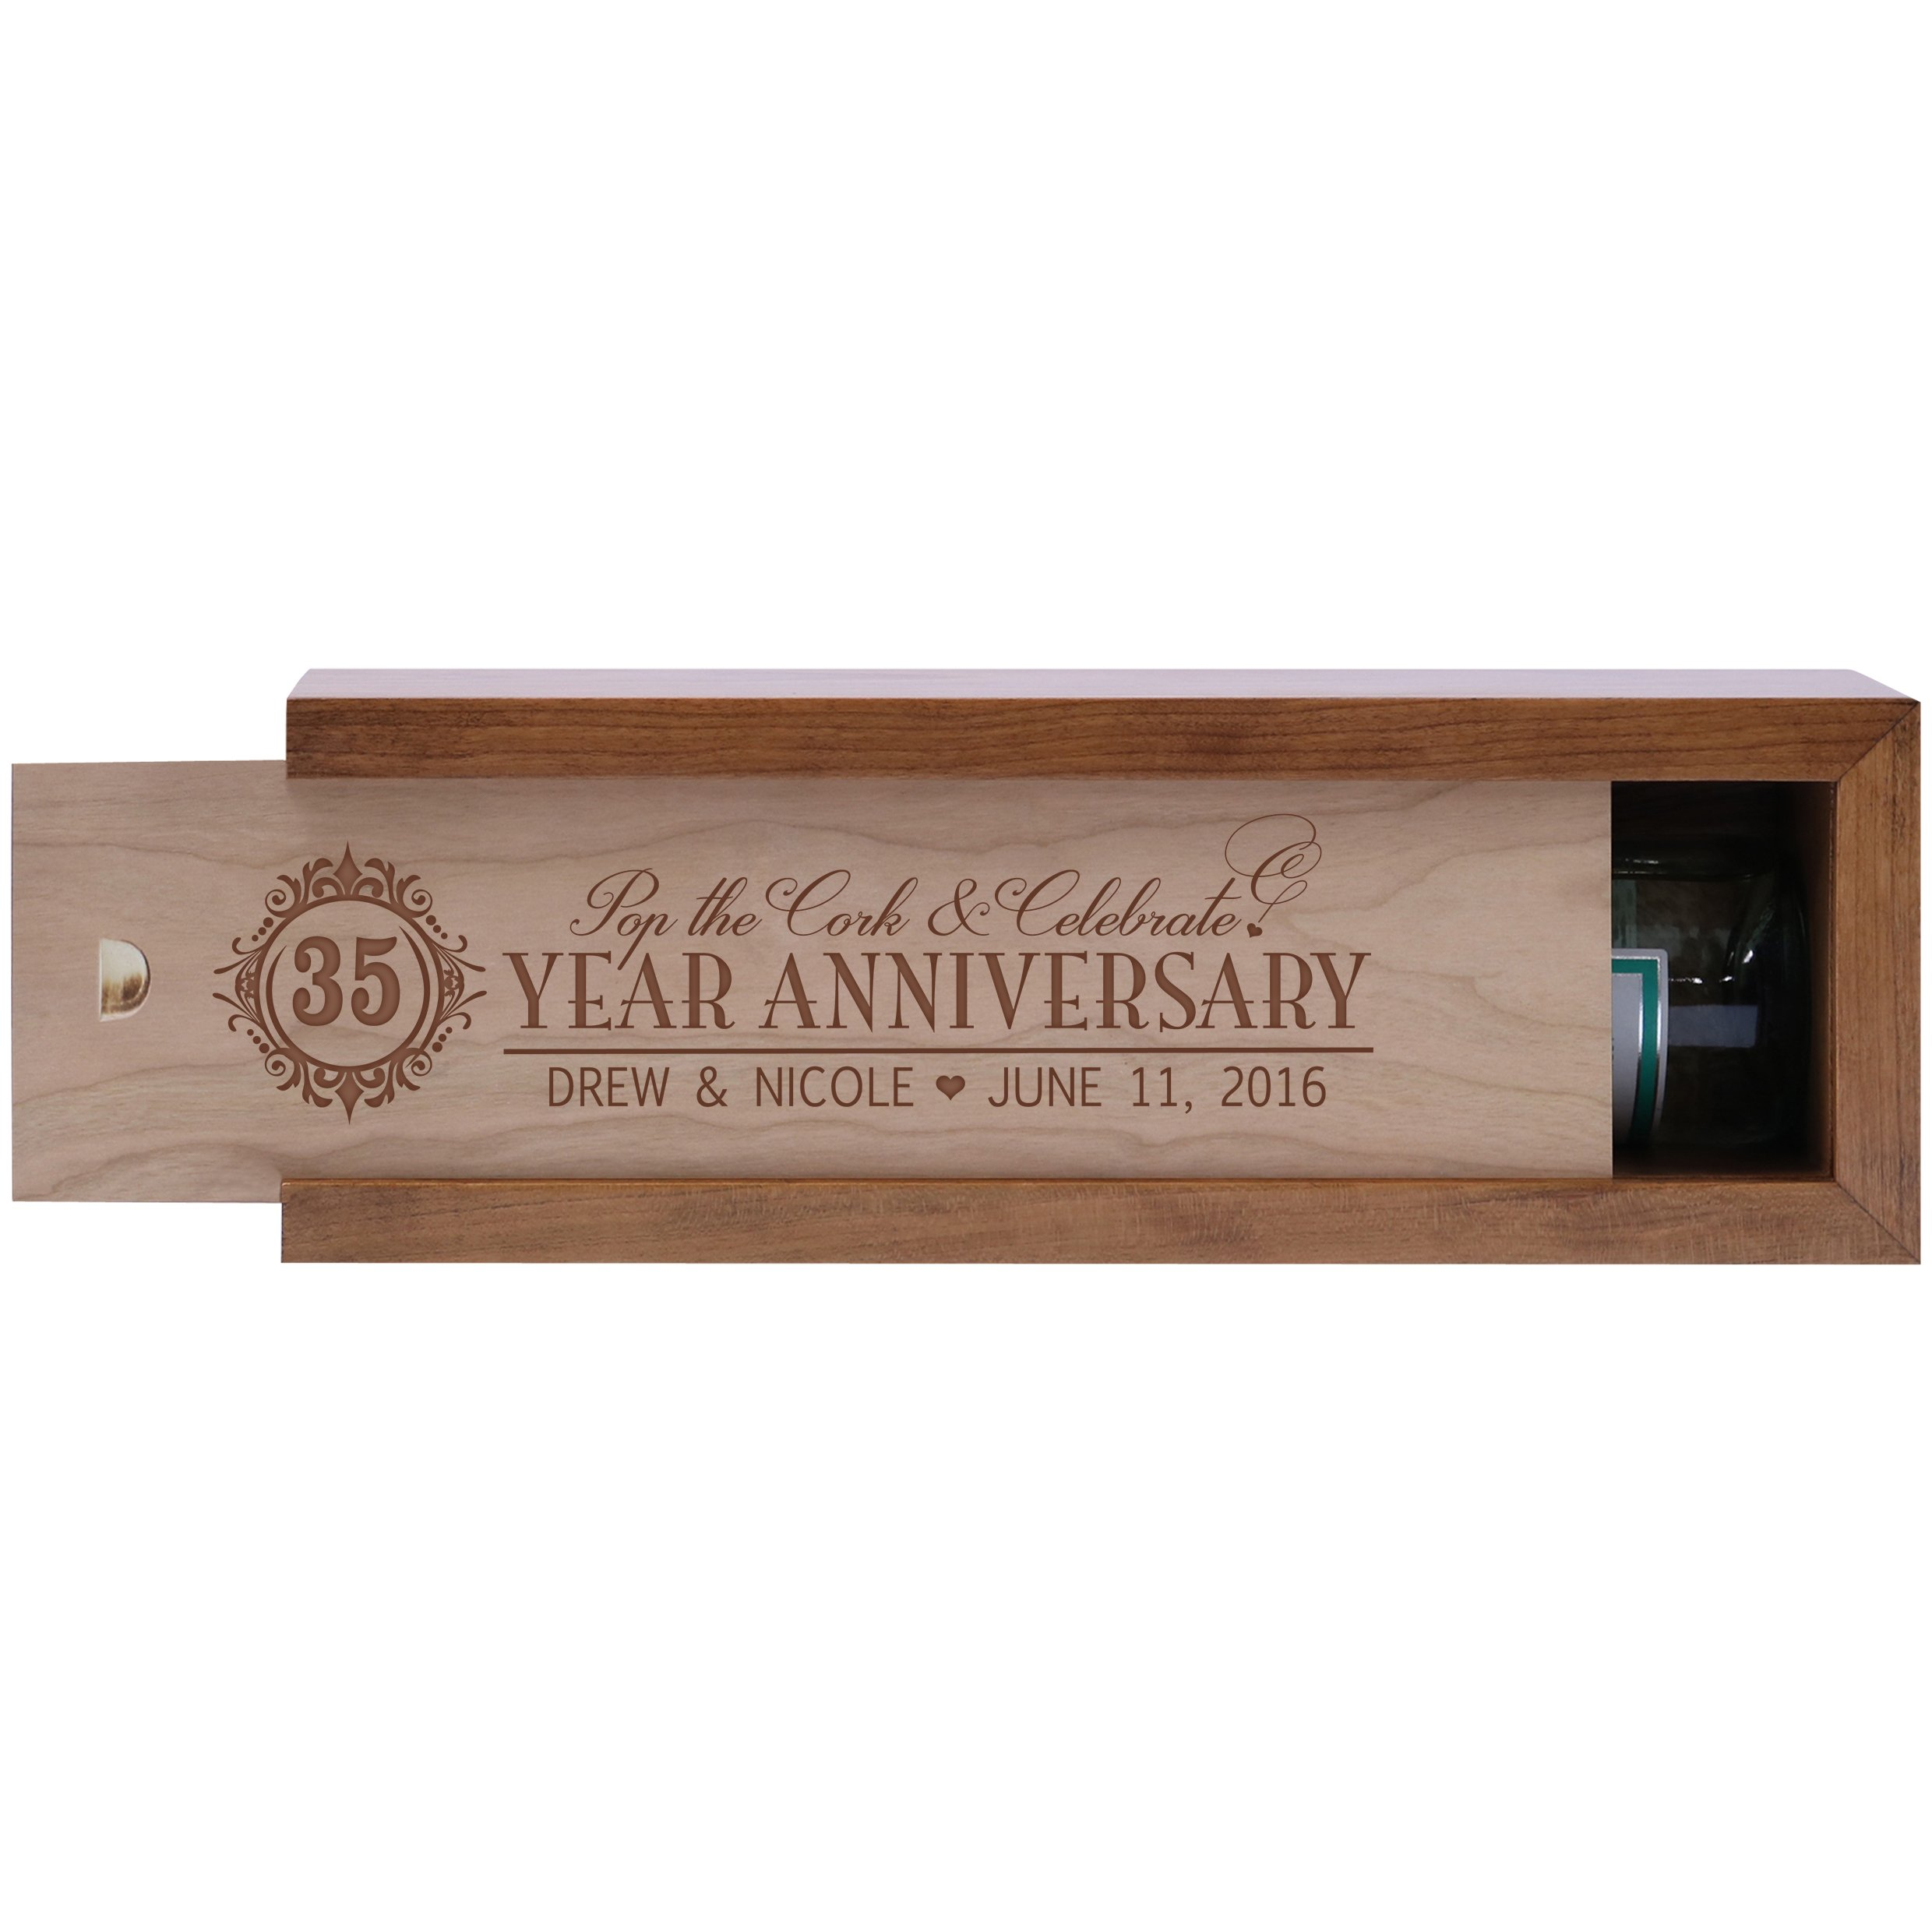 Personalized 35th year anniversary gift wood wine box Custom engraved gift for husband wife boyfriend or girlfriend Exclusively by American Wine Krafts (Cherry Box with Unfinished Cherry Lid)